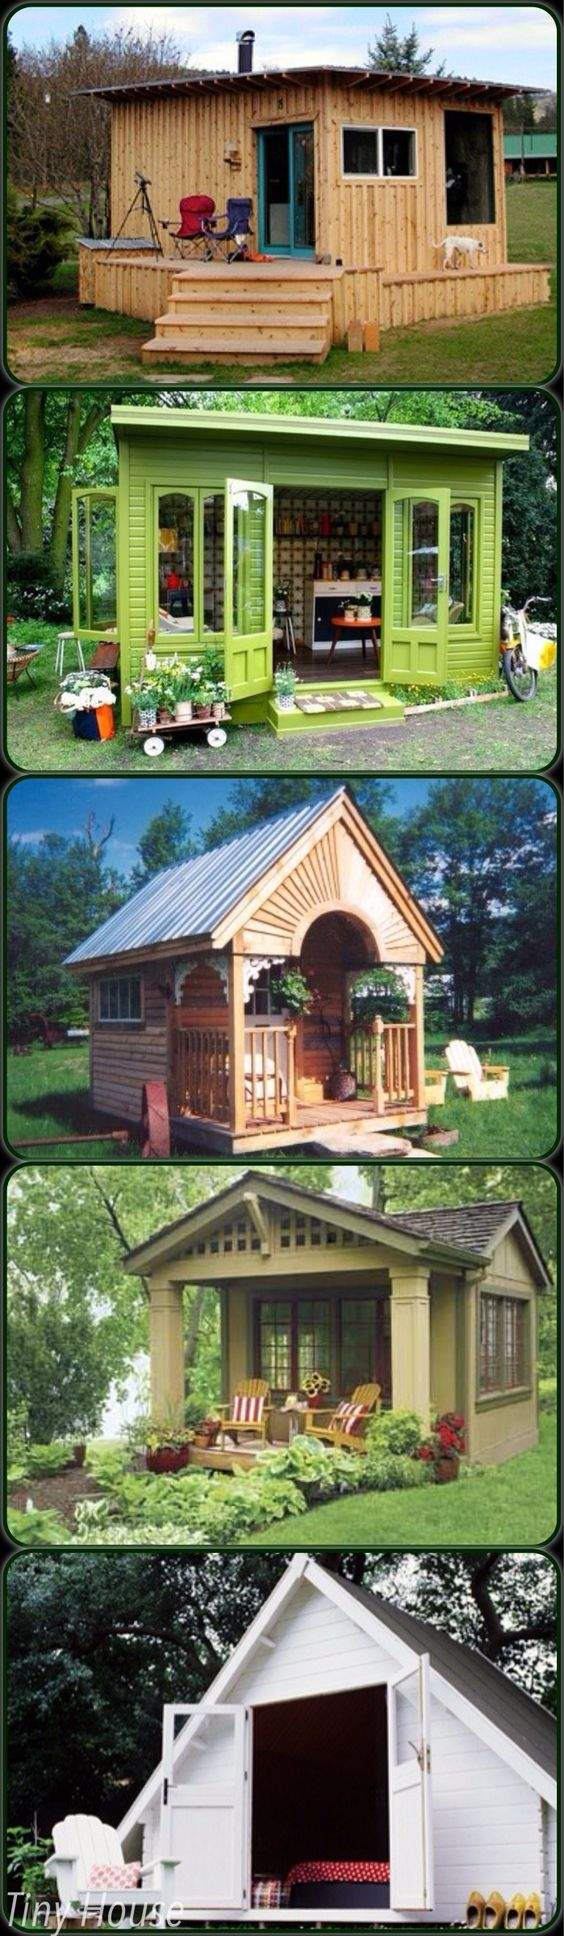 tiny house guest house ideas we plan to buy and build a